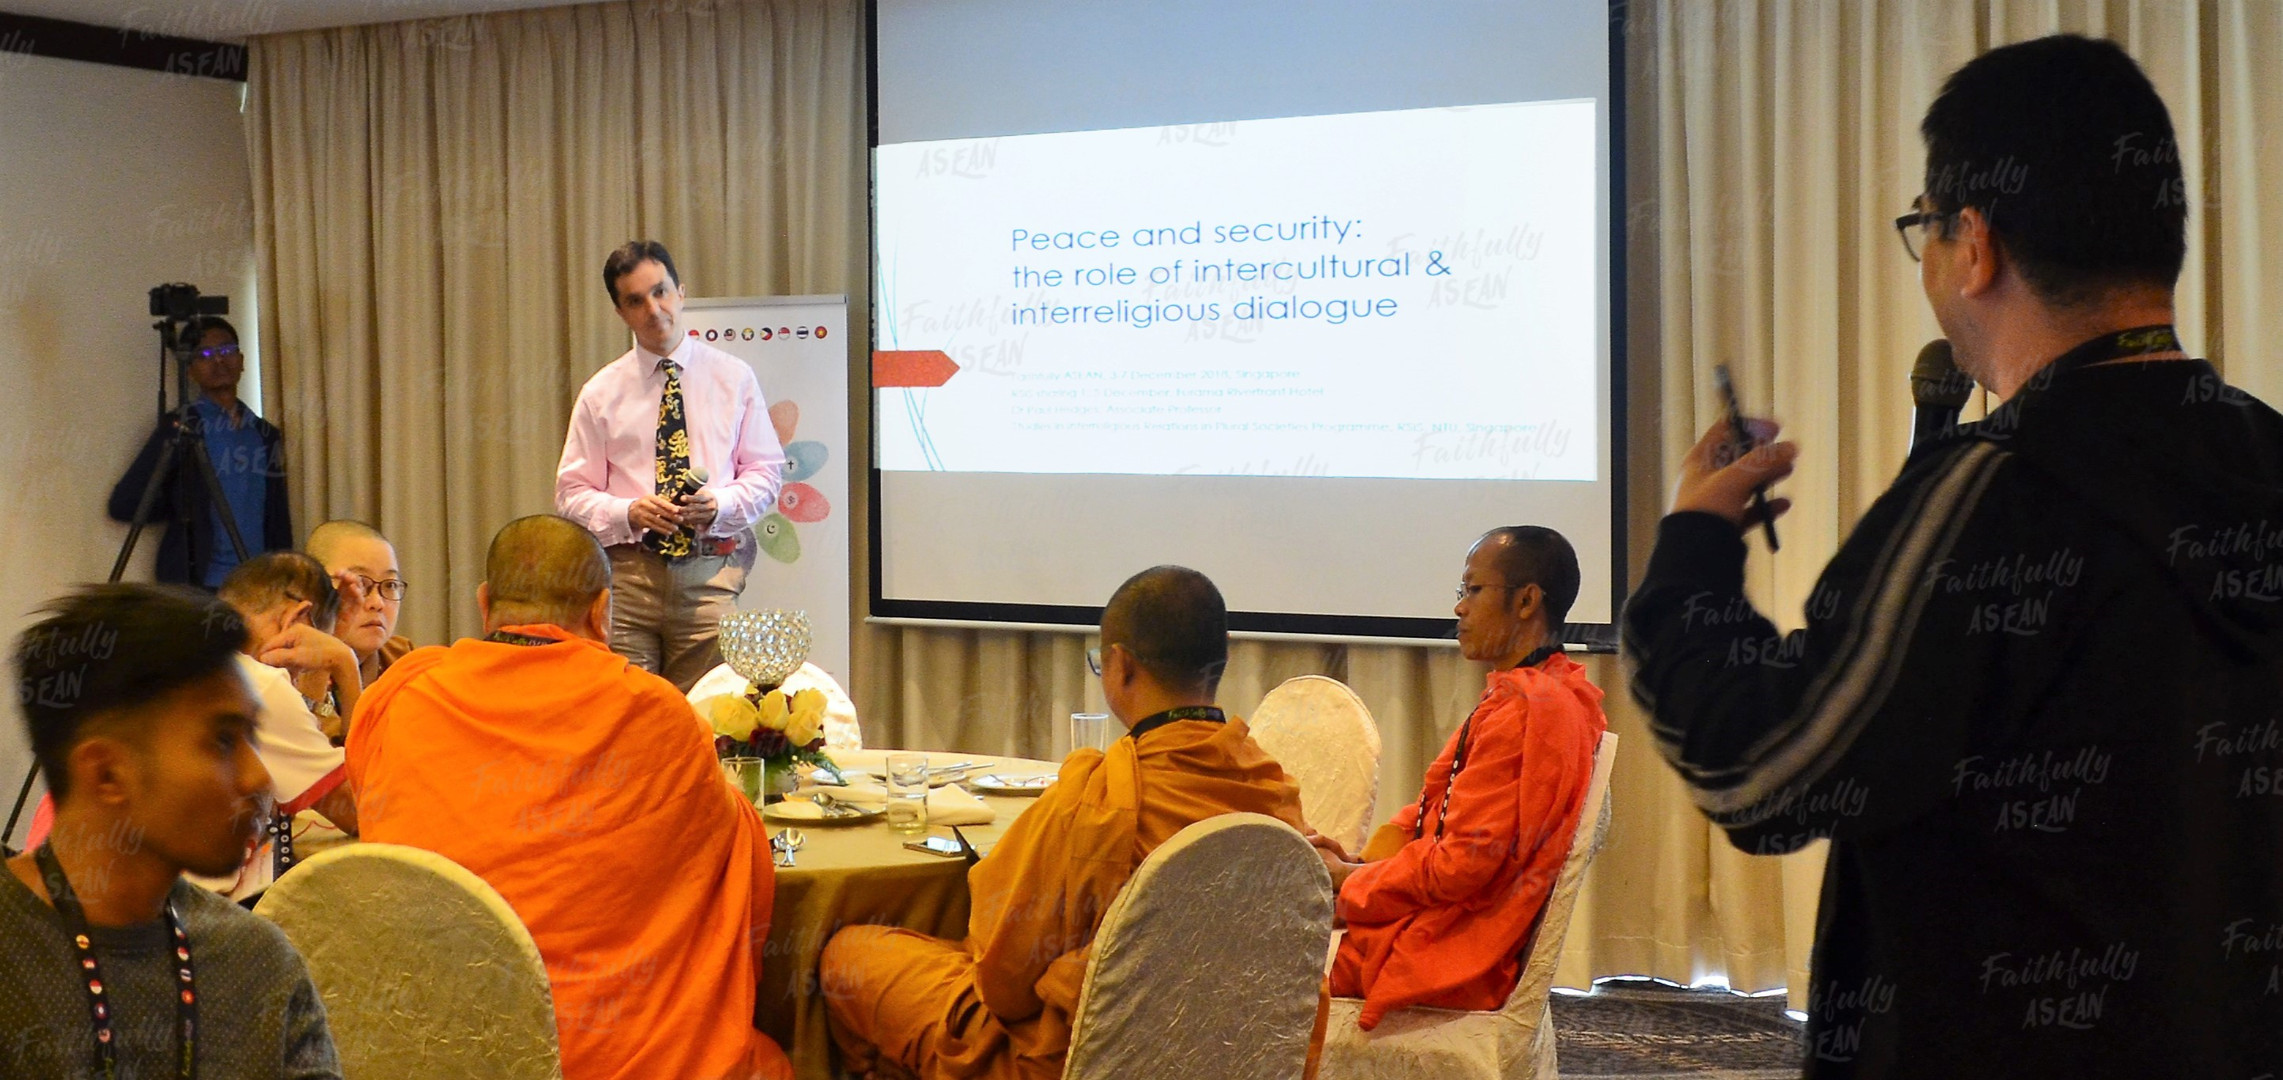 Breakfast Seminar with Associate Professor Dr Paul Hedges from the S Rajaratnam School of International Studies (RSIS) on the role and possible impacts of intercultural & interreligious dialogues in fostering peace and security, both locally and regionally.